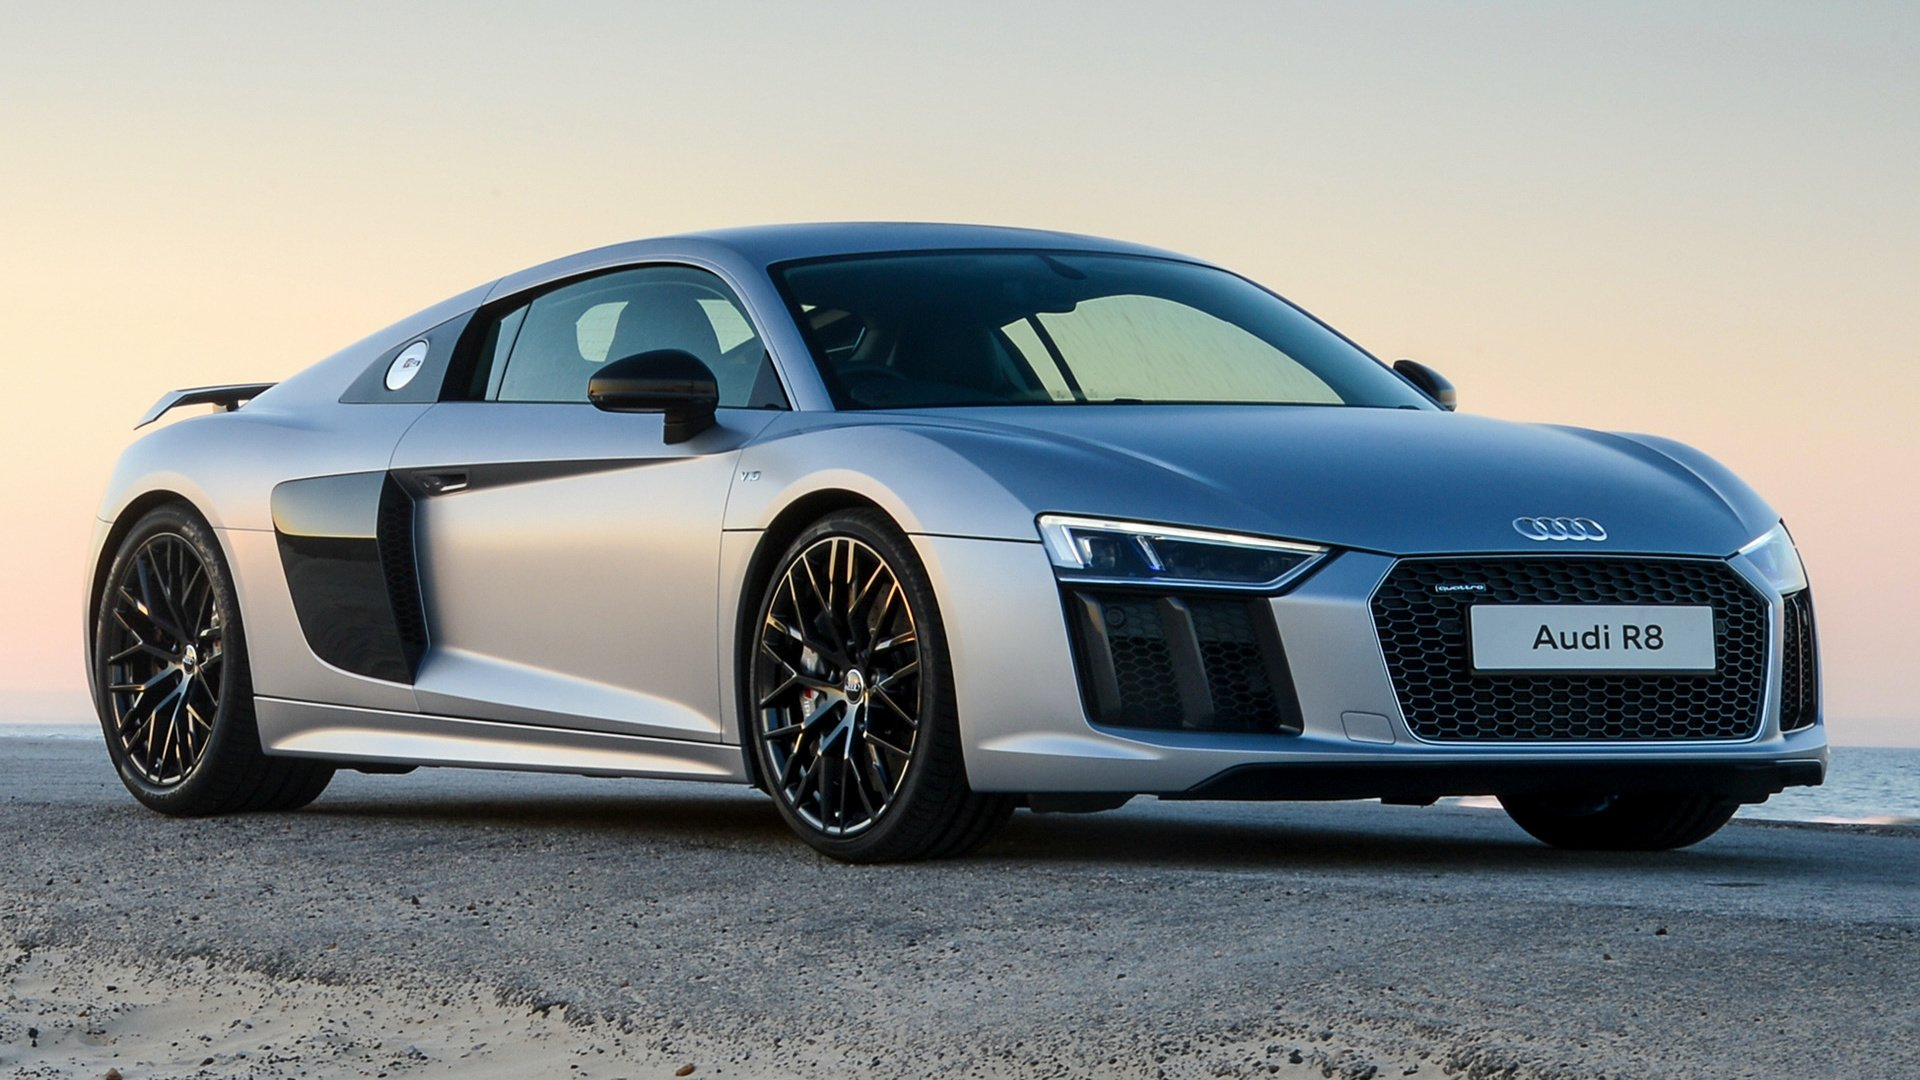 2016 Audi R8 V10 Plus Hd Wallpaper Background Image 1920x1080 Id 906809 Wallpaper Abyss